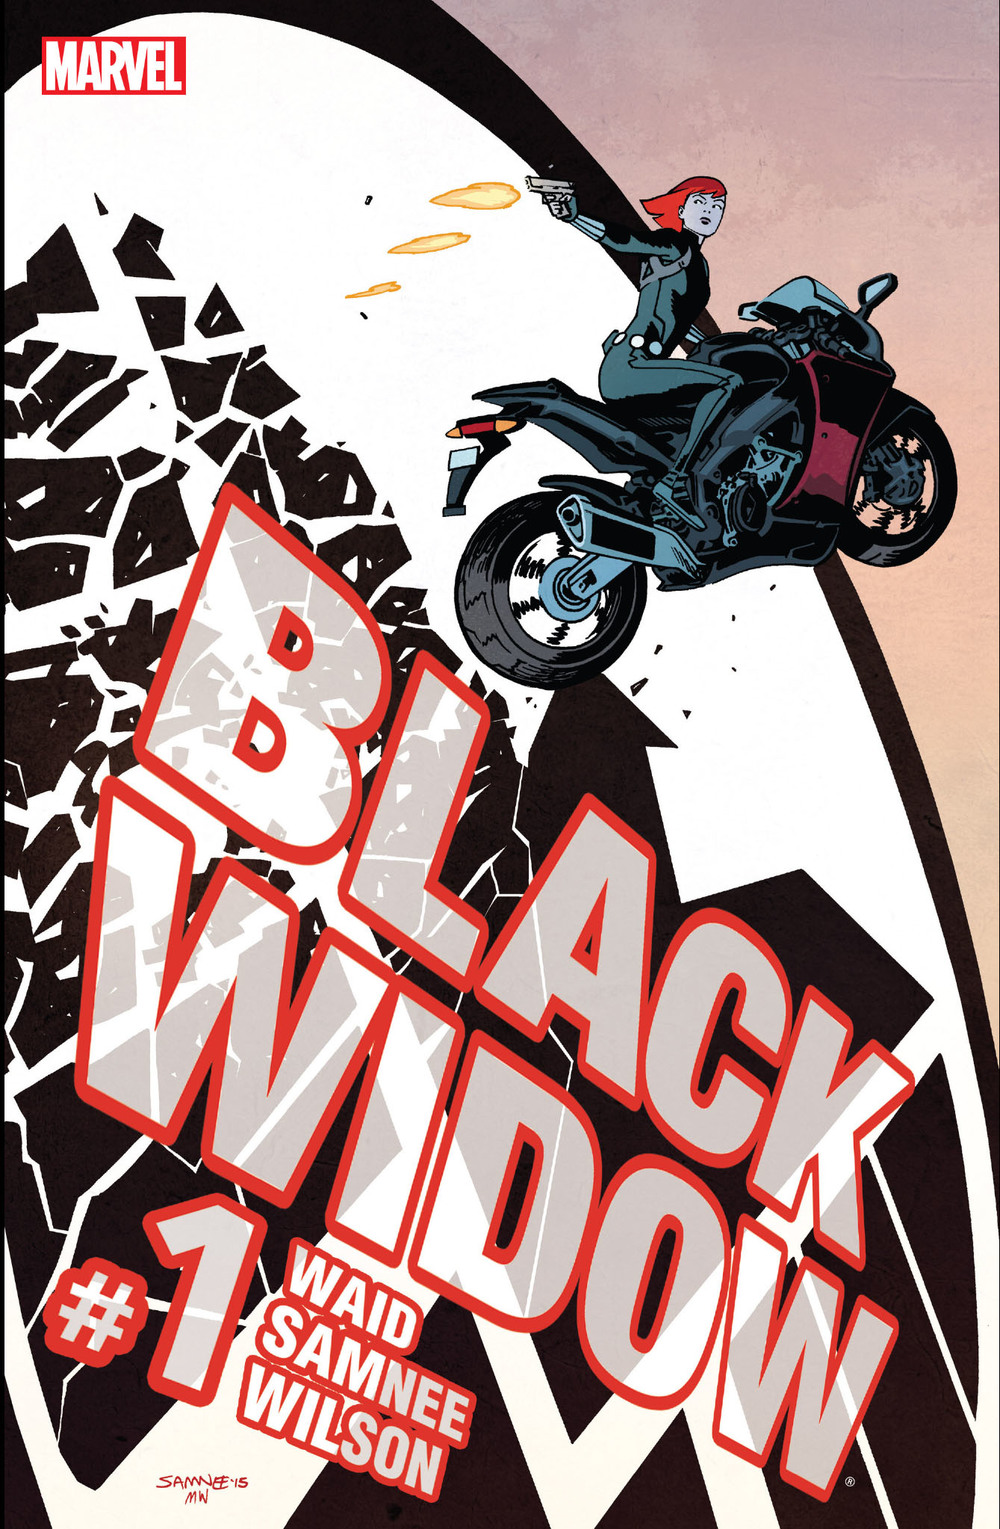 Black Widow # 1 - Anatomy of Action — D-Train